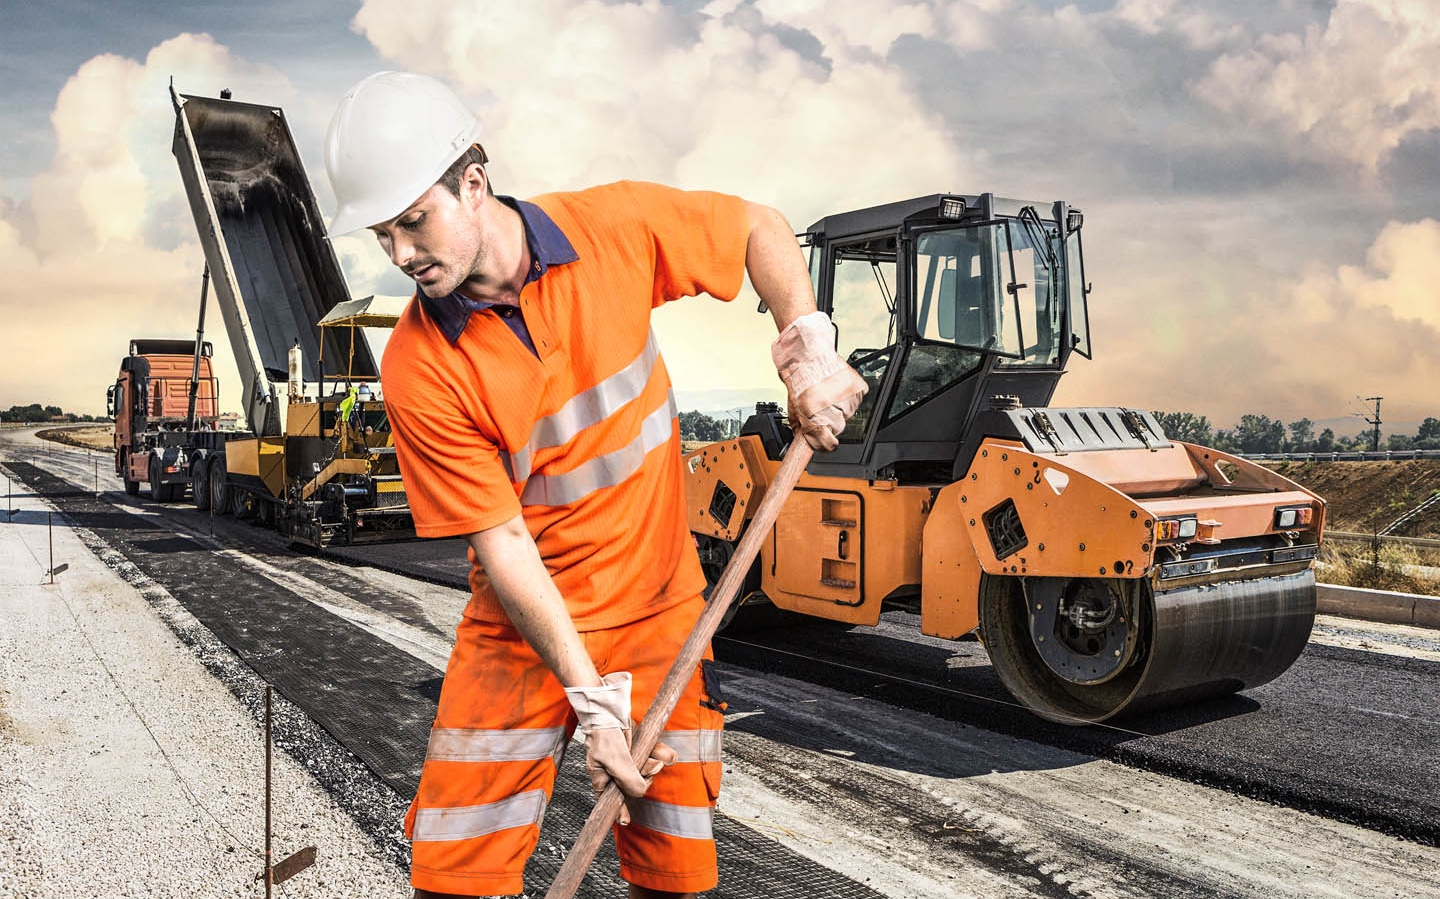 HAVEP Road Civil Engineering Workwear